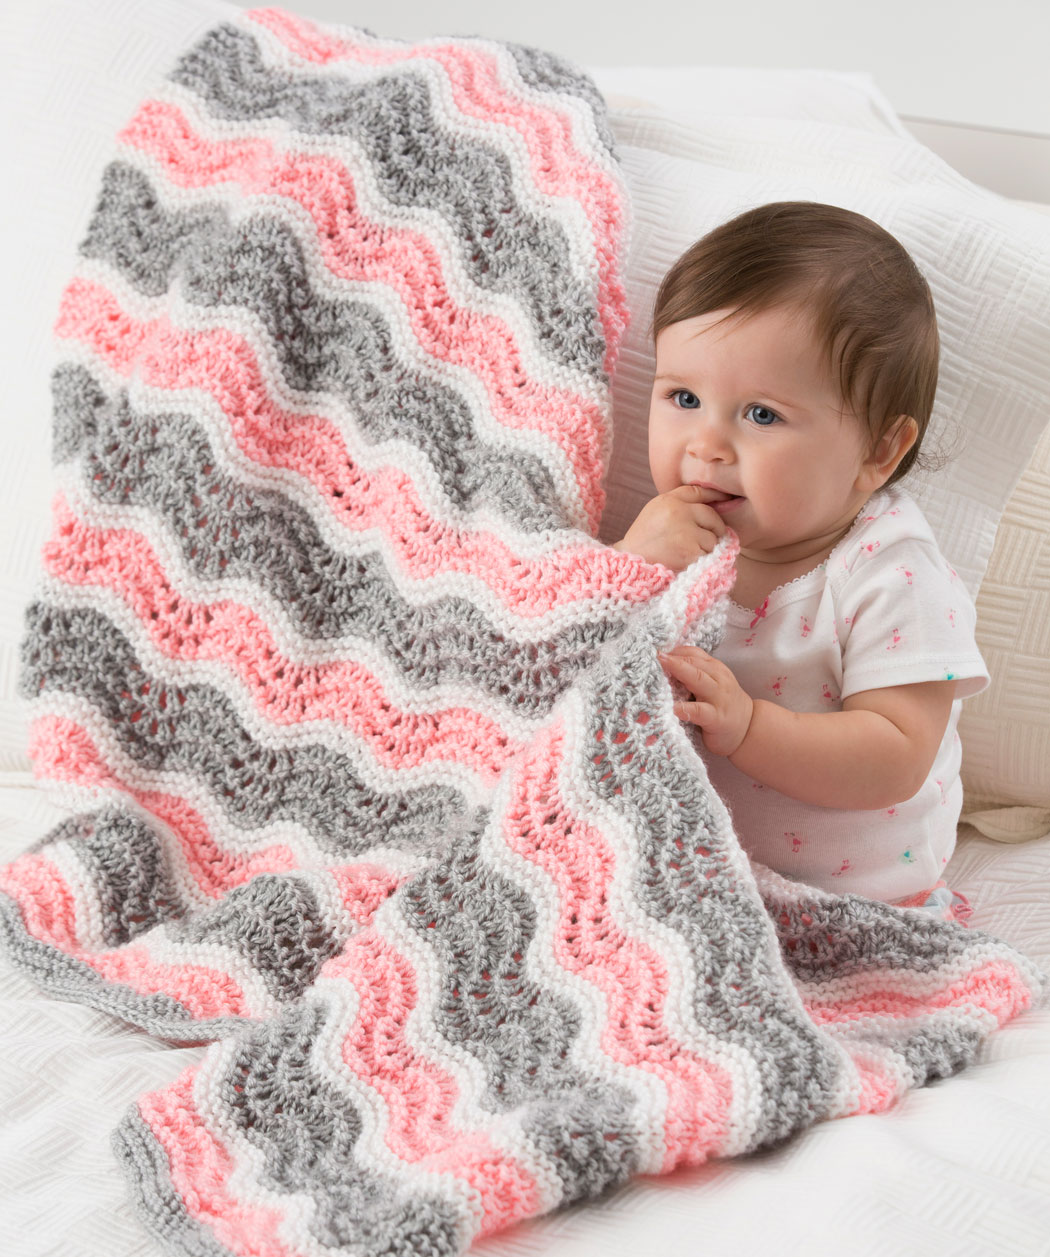 knitting patterns for babies 1 xxjbxzg